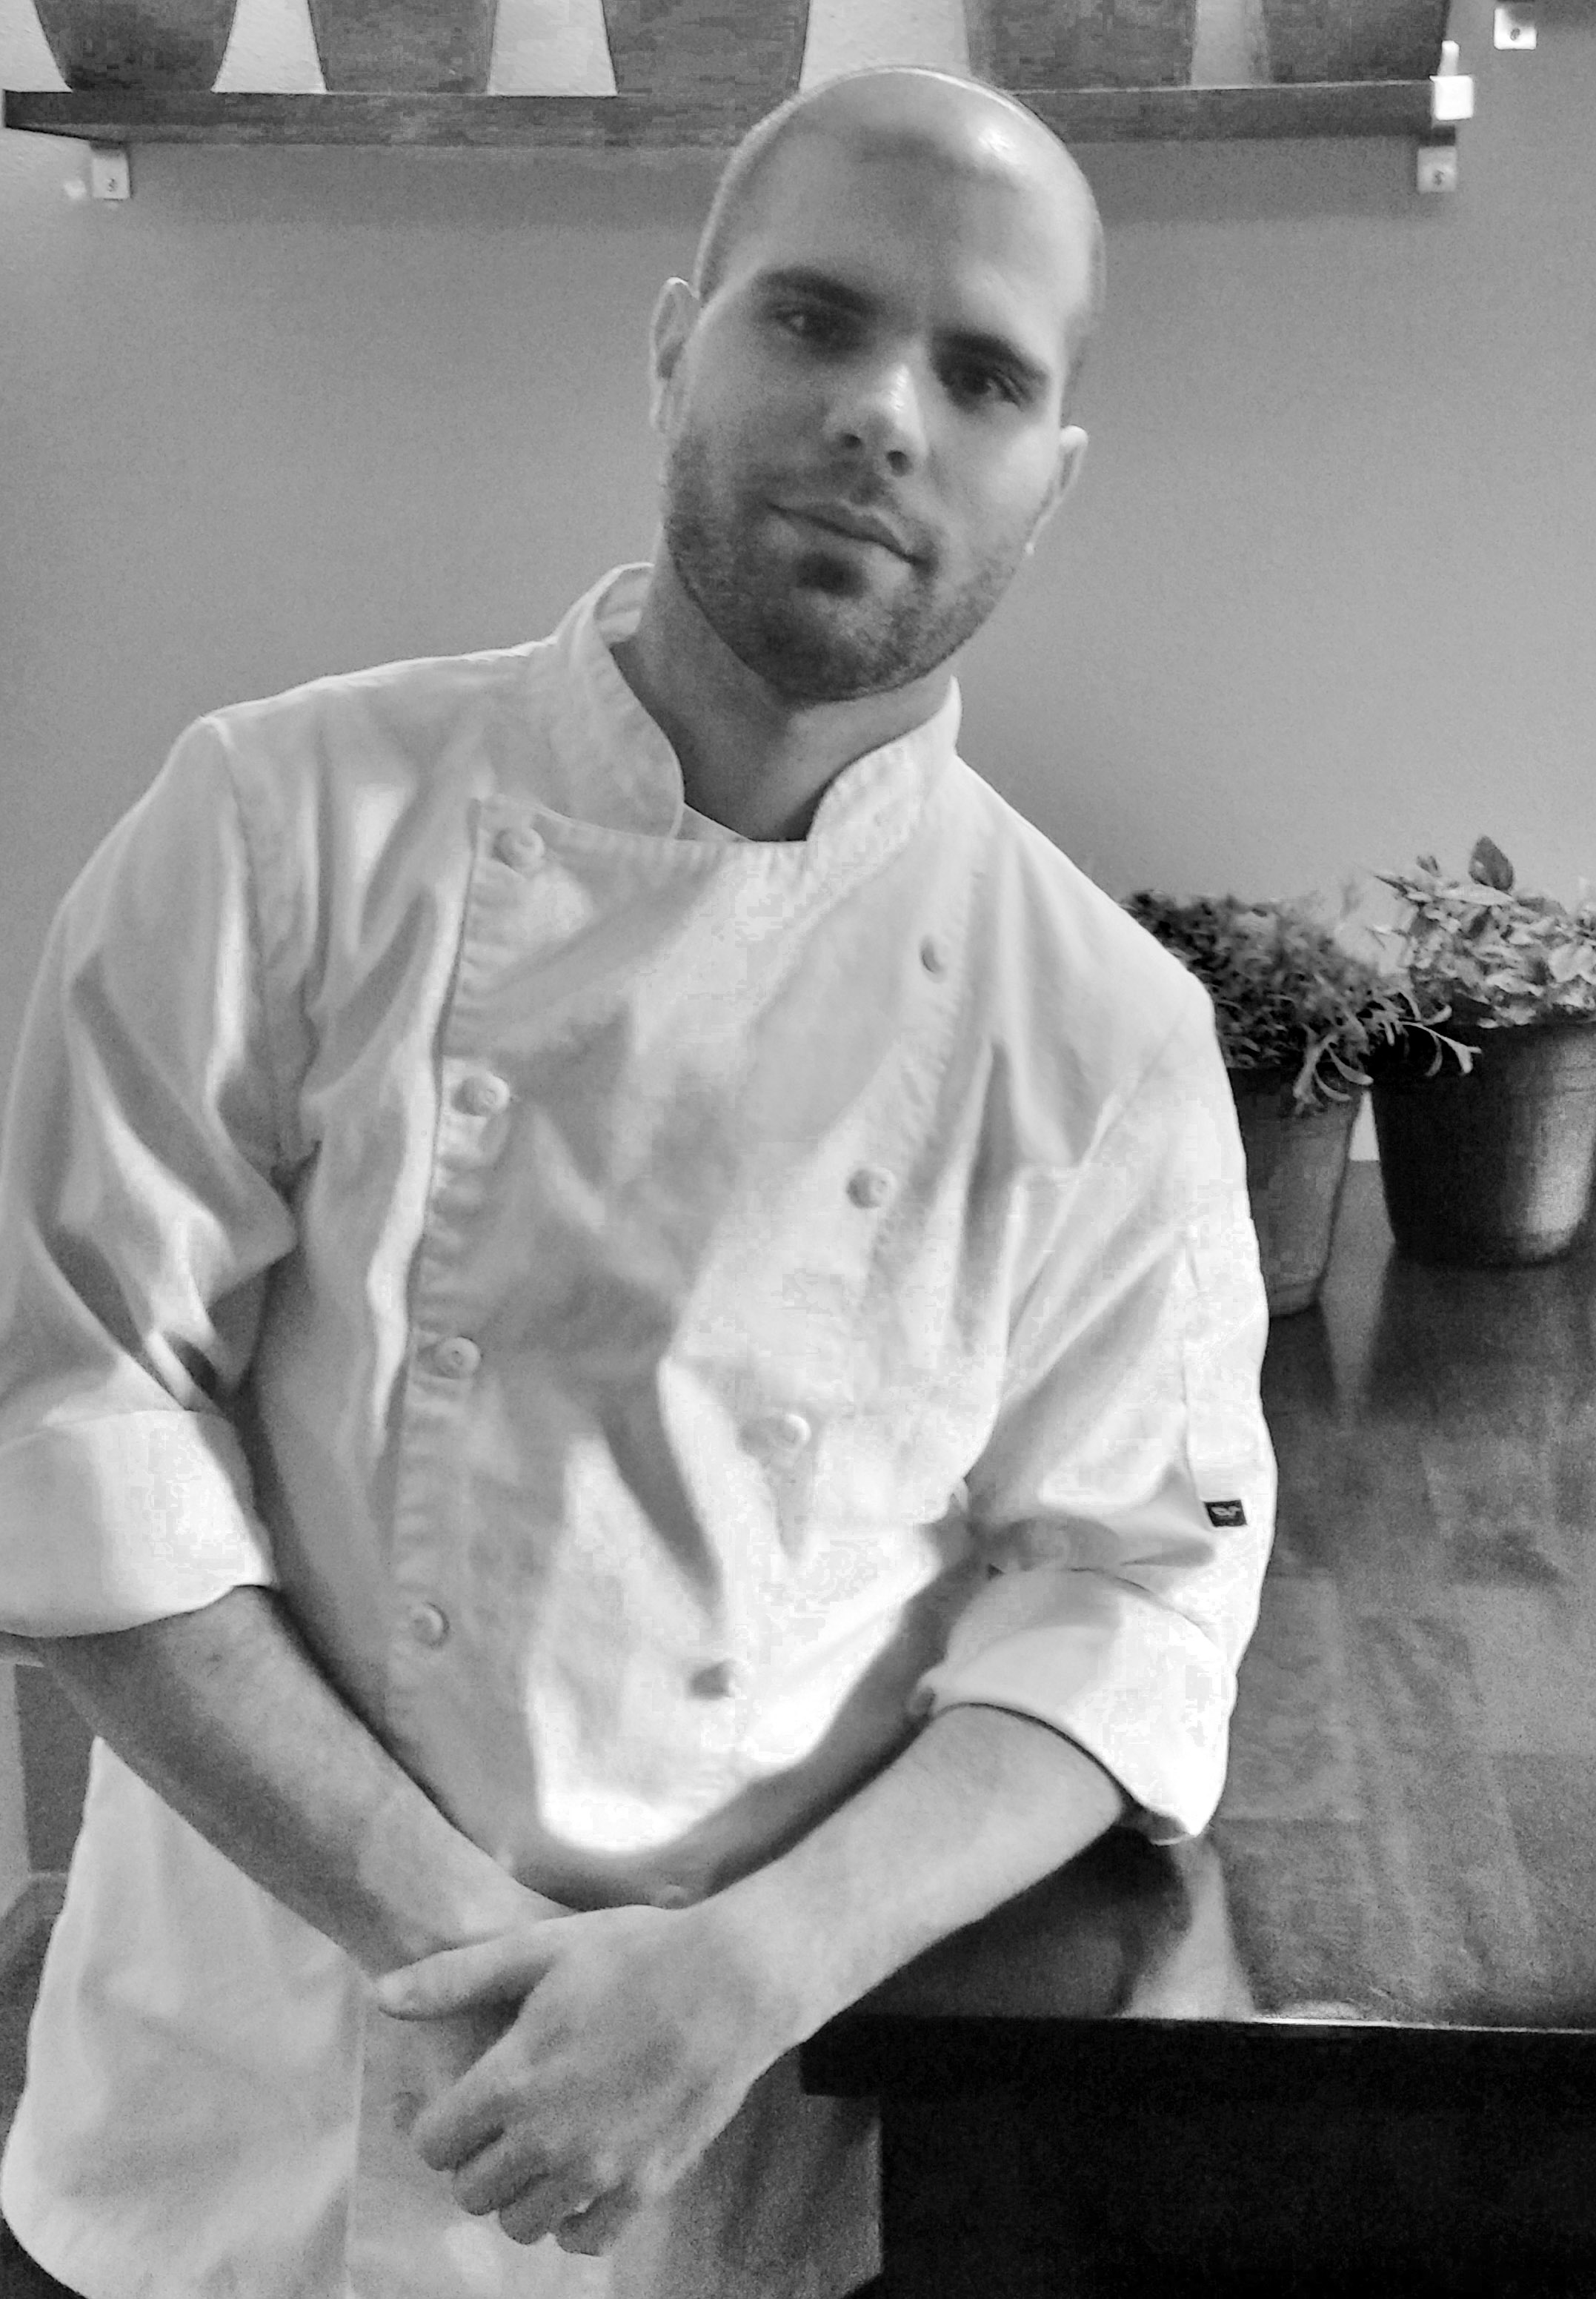 head chef brandon smoak, EastBurn, happy hour, brunch, dinner, date spot, best bar Portland, best happy hour, live music, pdx, best food Portland, beer, wine, whiskey, patio, games, beer belly